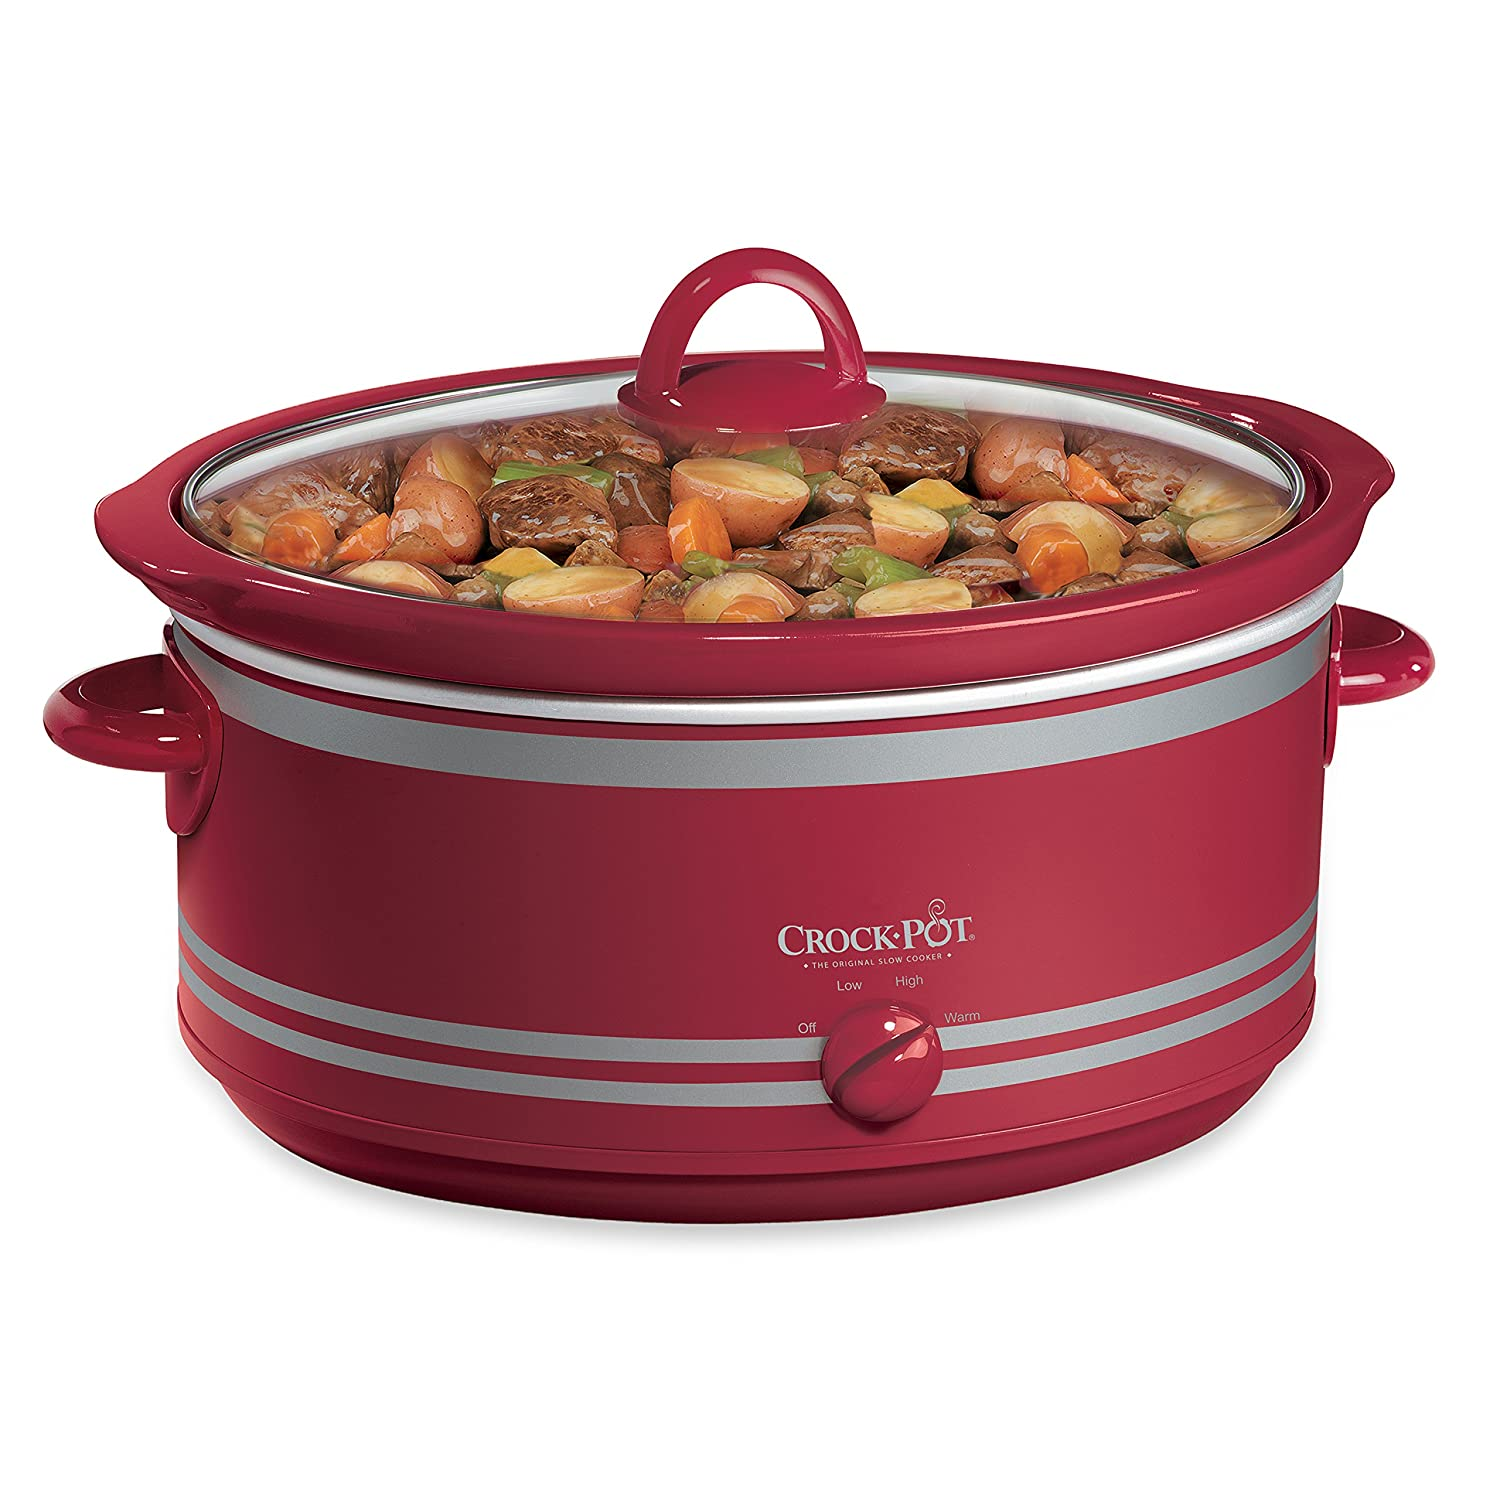 Crock-Pot SCV702 7-Quart Manual Slow Cooker with Travel Bag Crockpot VS338776